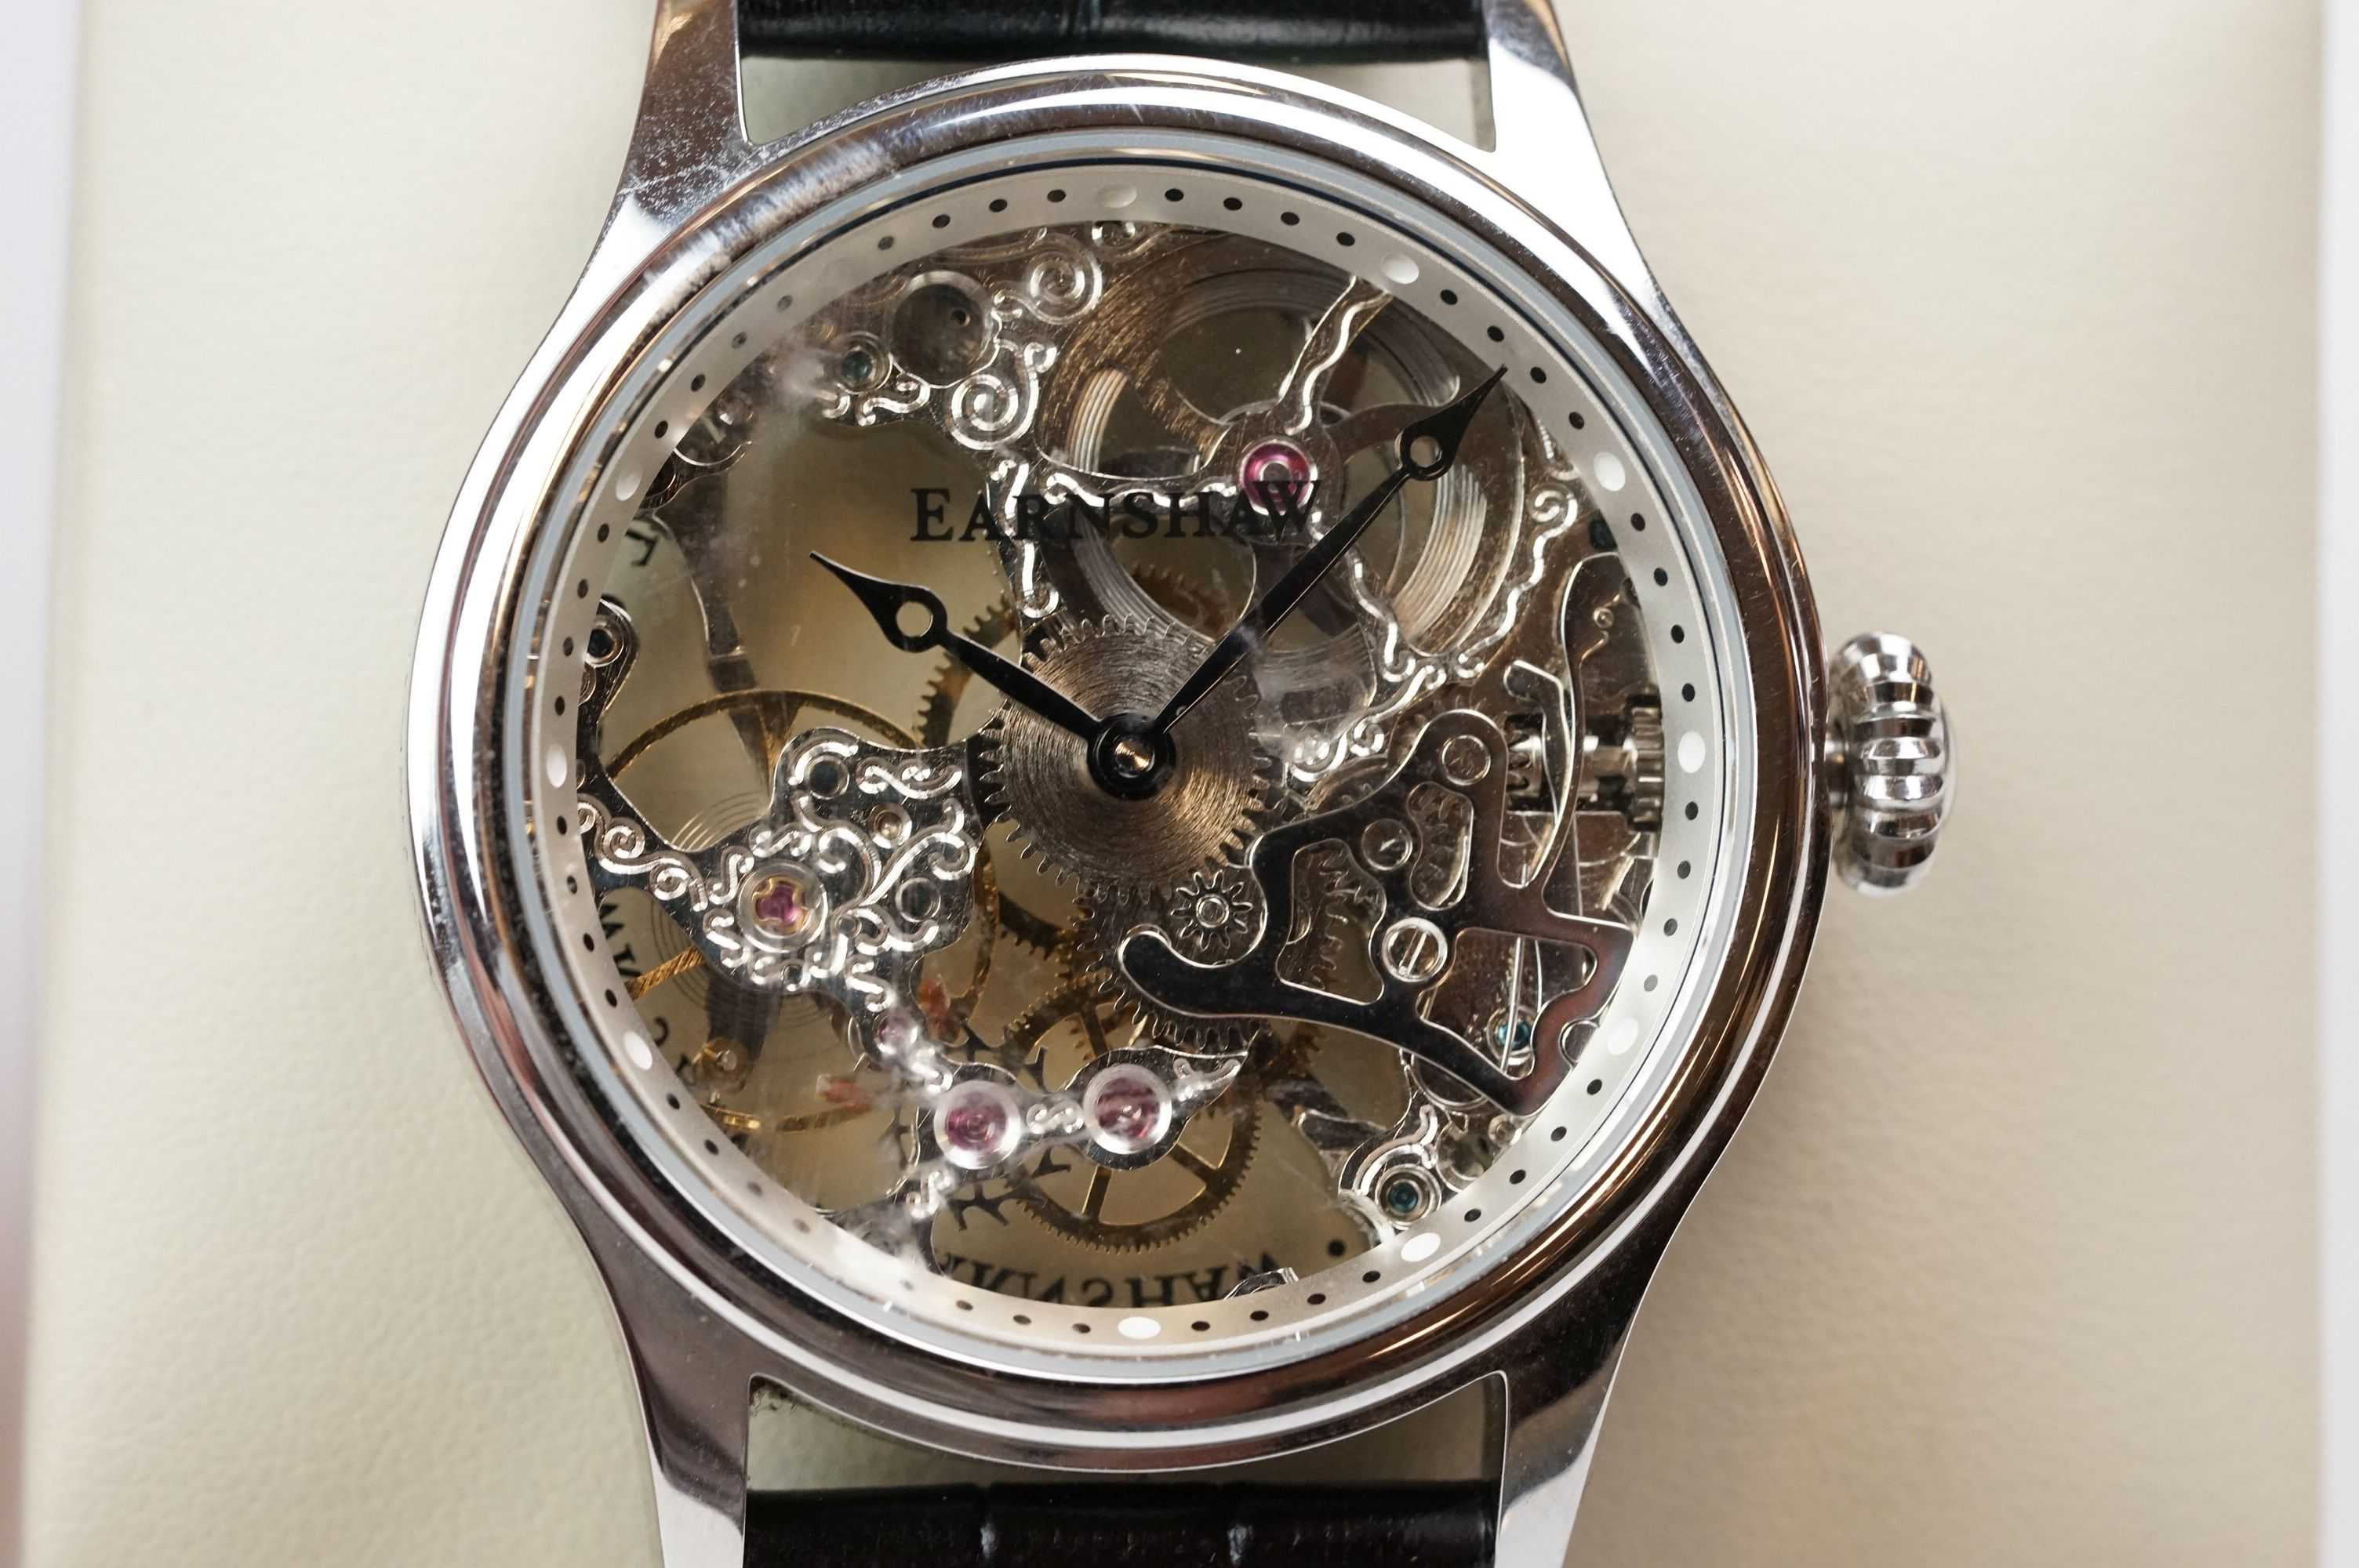 Earnshaw Gents wristwatch, skeleton face and dial, WR 5 ATM 8049, together with paperwork, box and - Image 3 of 9